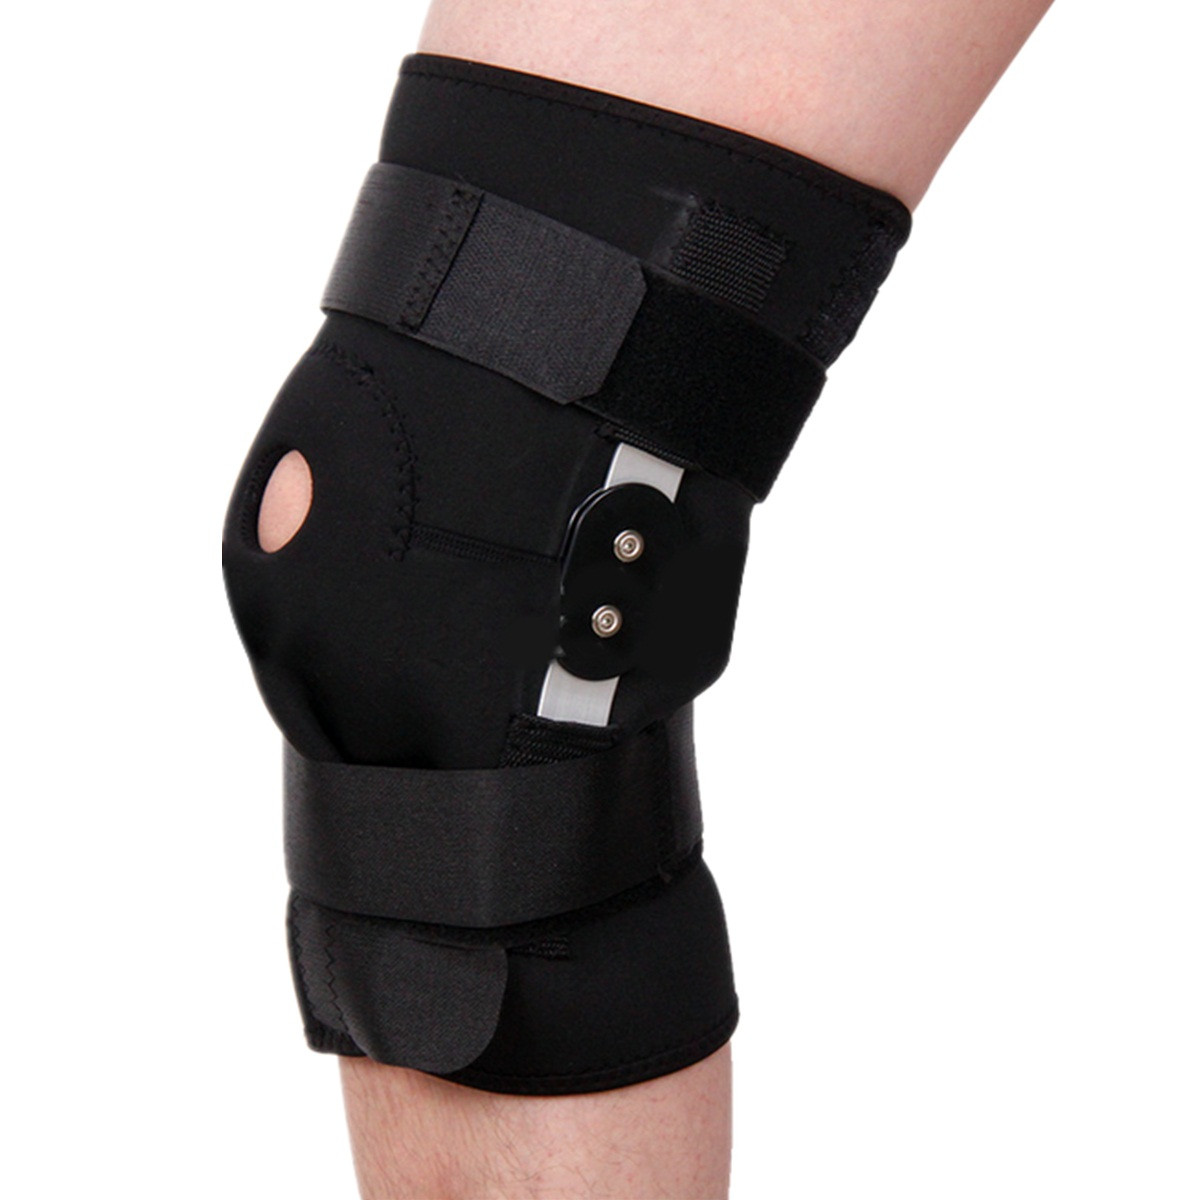 Sports Adjustable Kneepad Knee Support Brace Strap Wrap Bandage Pain Injury Relief <font><b>Pad</b></font> Sleeve <font><b>for</b></font> Basketball Volleyball Running